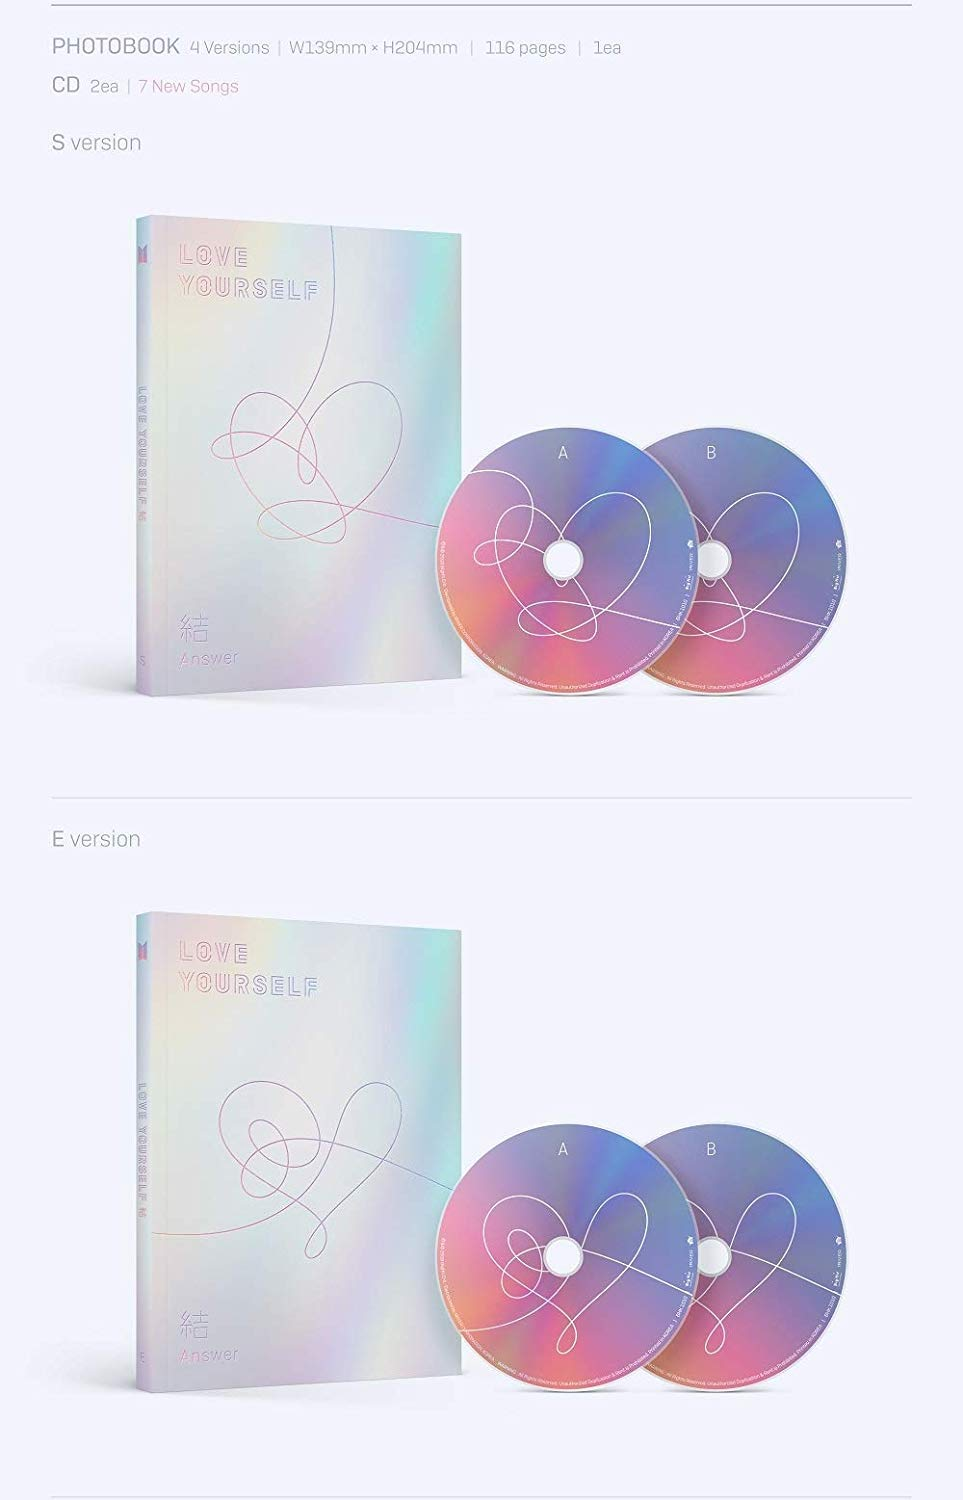 BTS - [Love Yourself 結 'Answer'] 4th Album F VER 2CD+Poster+116p PhotoBook+20p Mini Book+1p PhotoCard+1p Sticker+Pre-Order+Extra PhotoCard Set K-POP Sealed by BTS (Image #3)